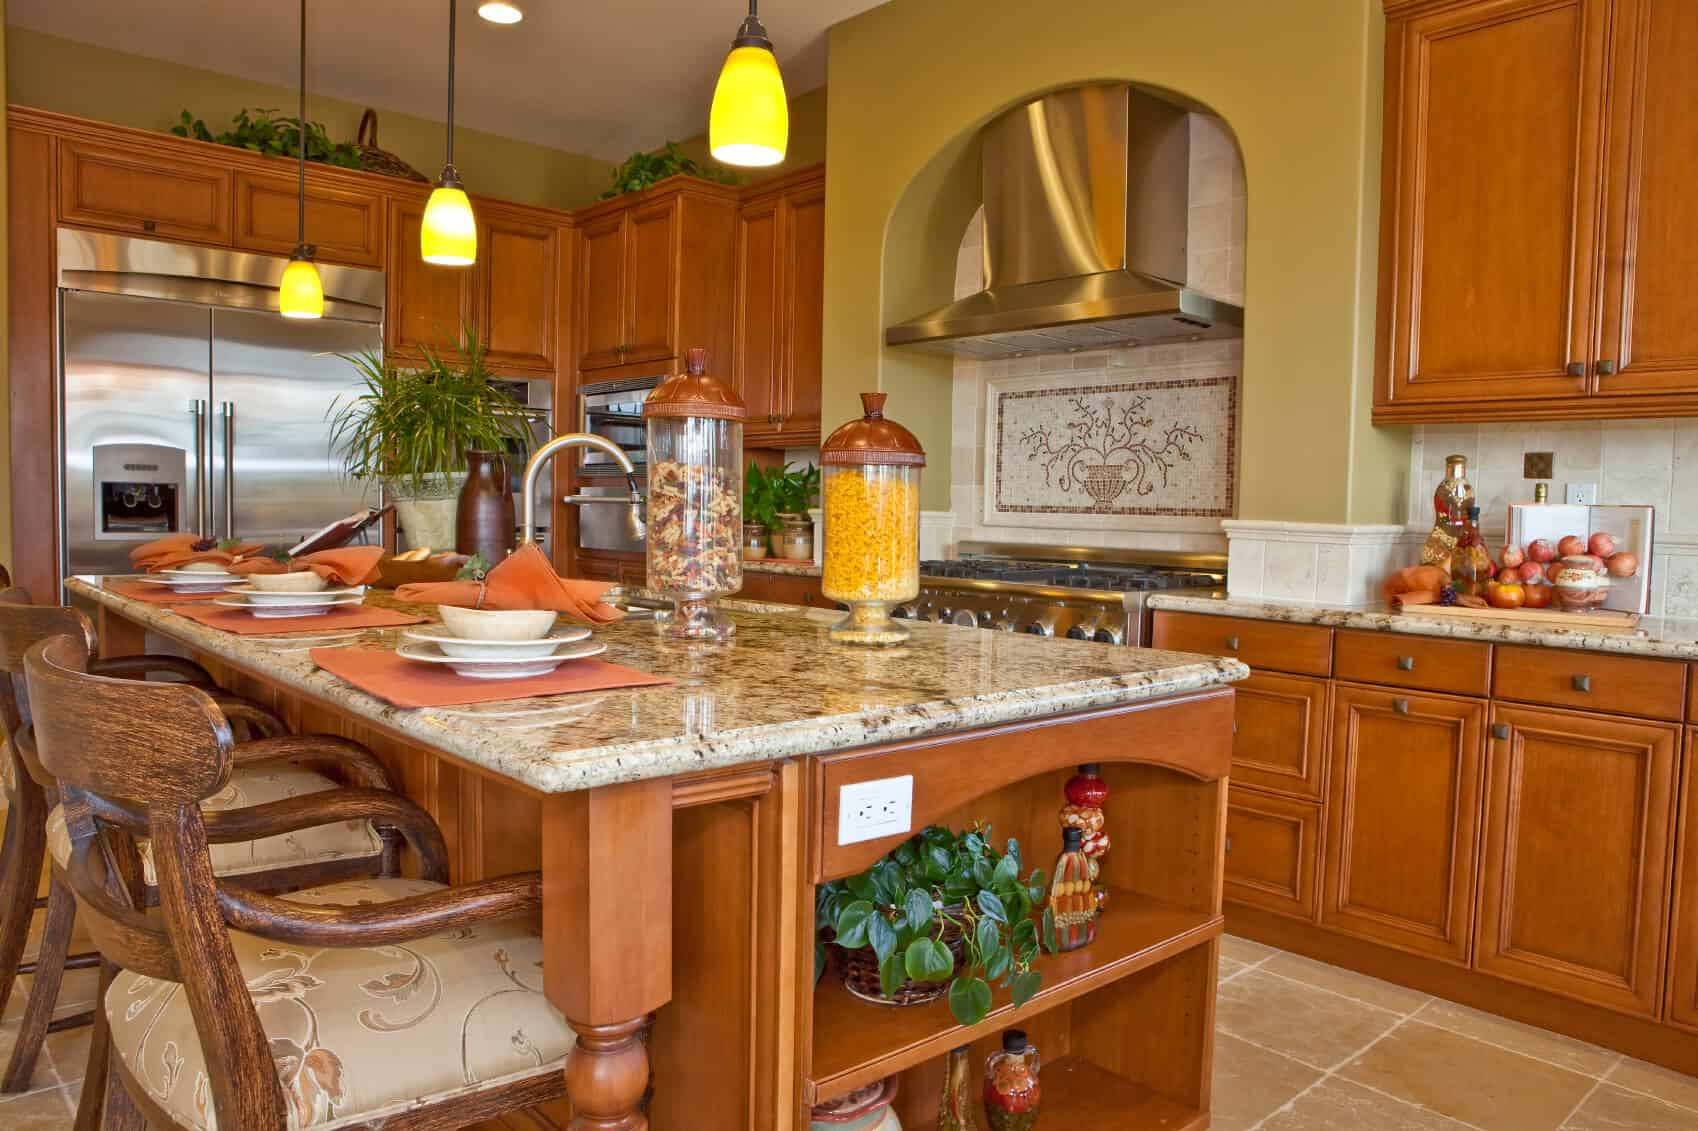 Warm Wood Tones Unify This Kitchen Featuring Large Island With Ample  Seating Area, Built